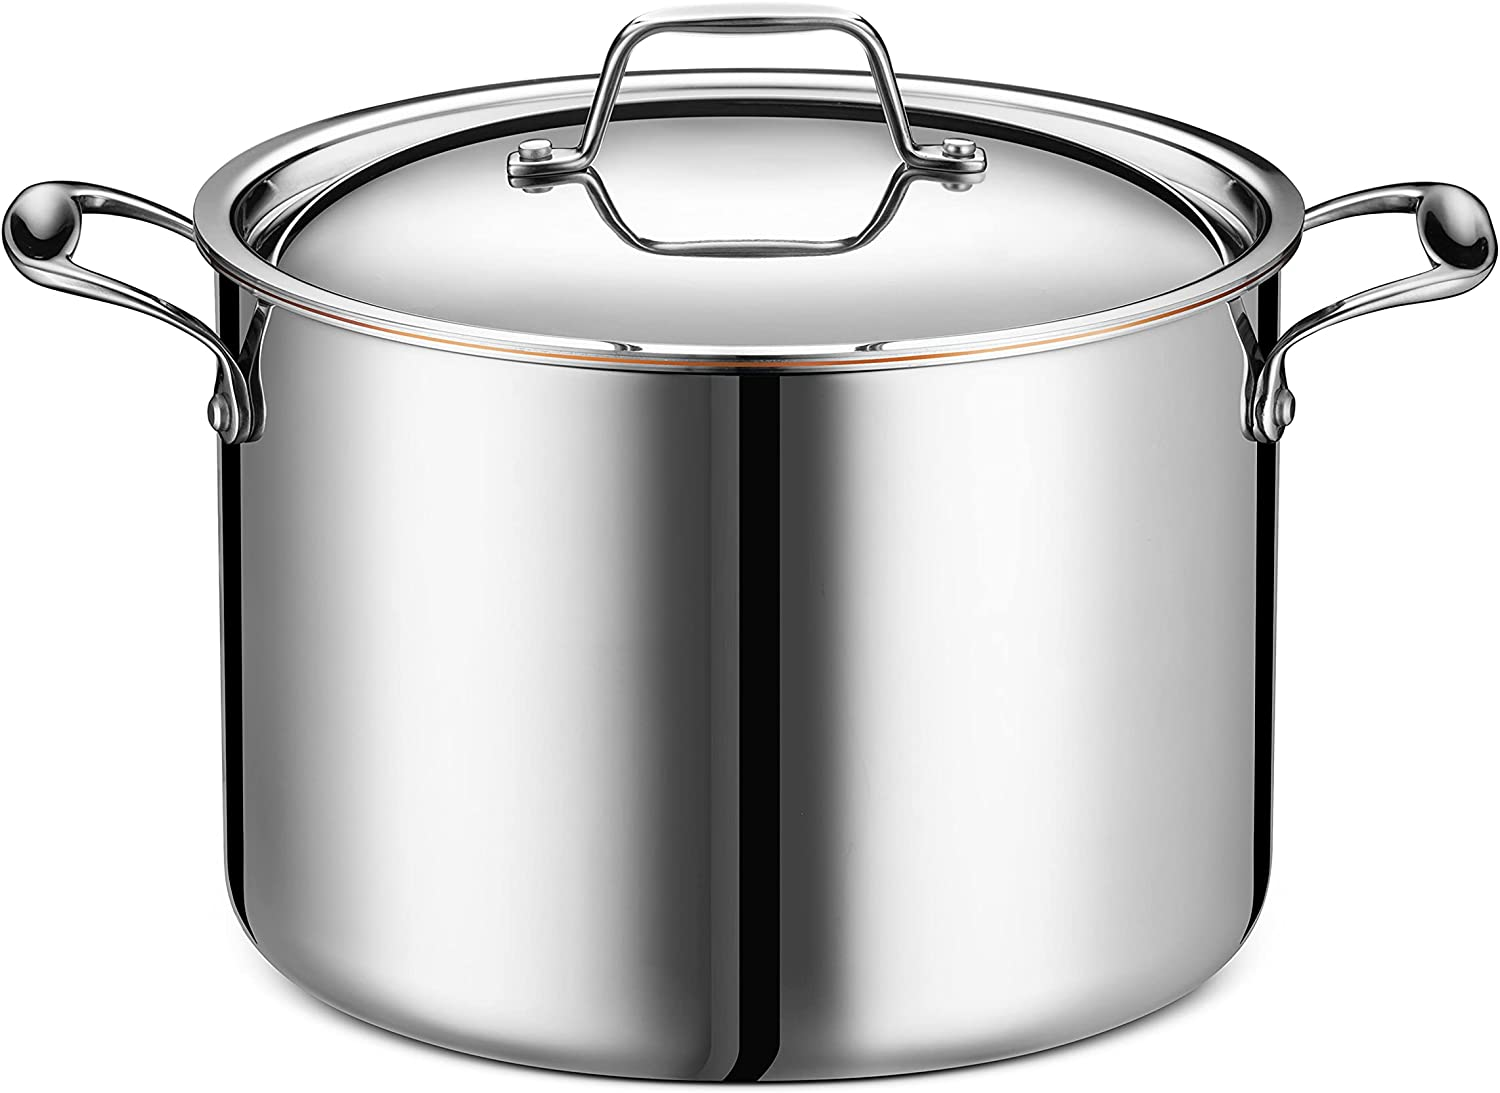 Legend Stainless 8-Quart Copper Outstanding Core ply Steel Stock 5 Dallas Mall